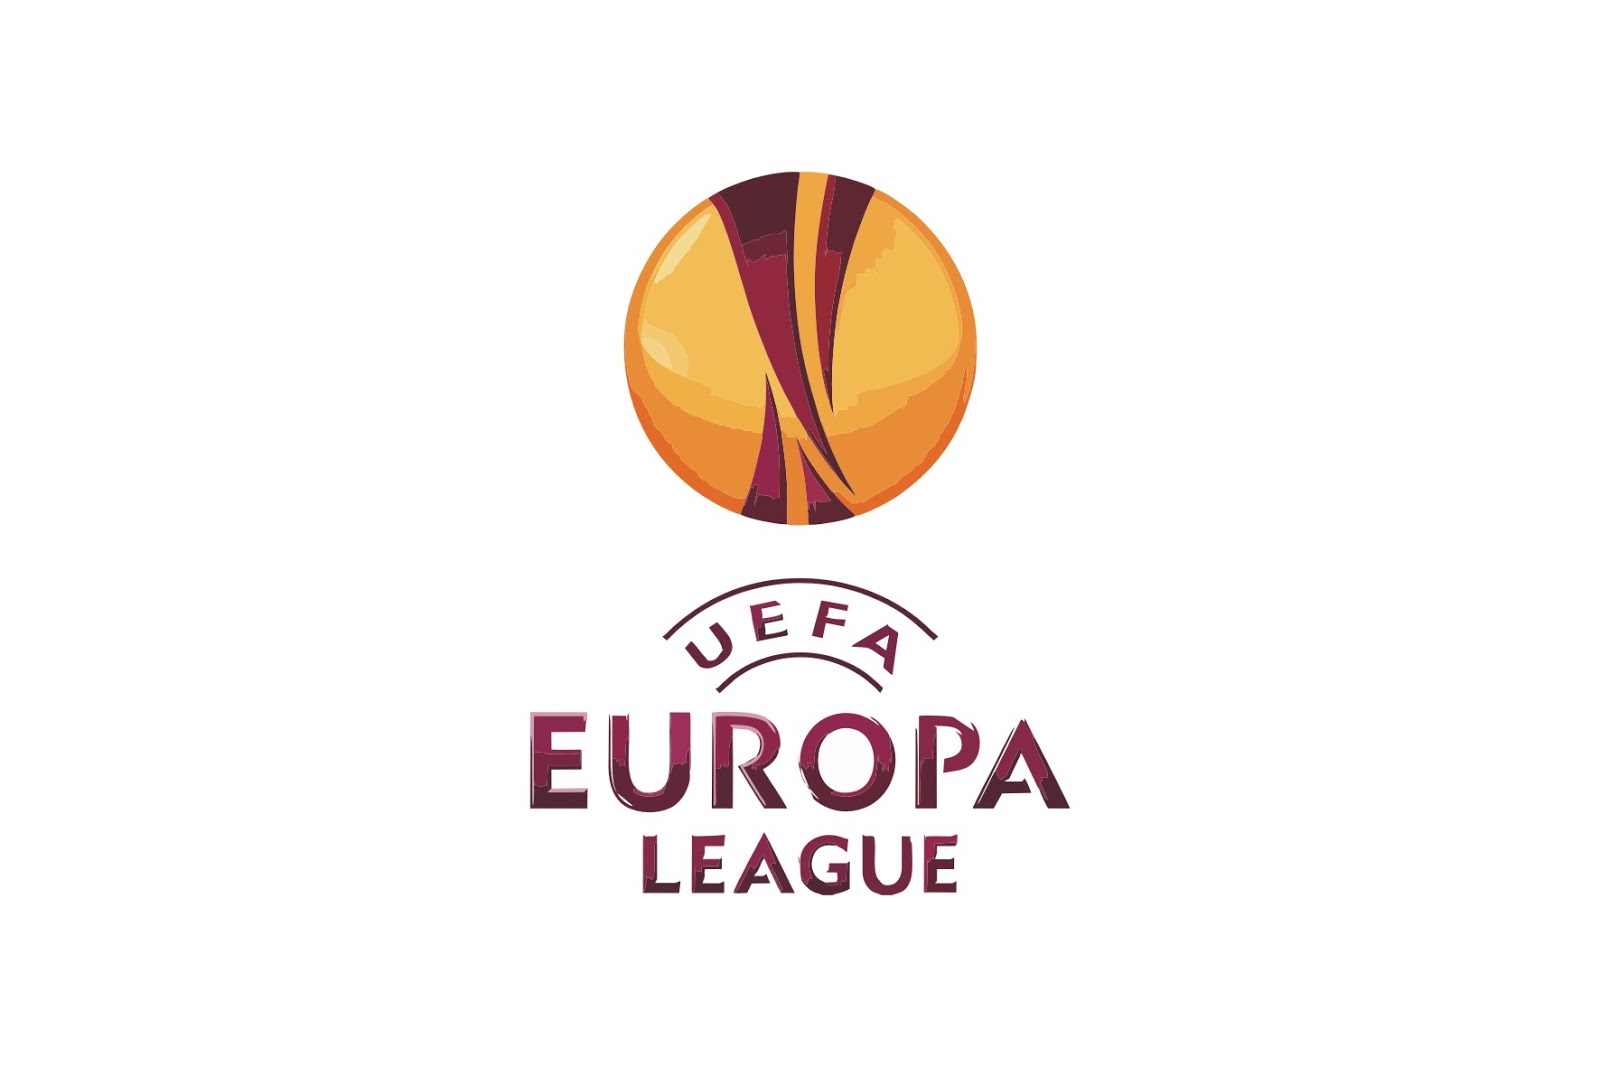 europa league livestream